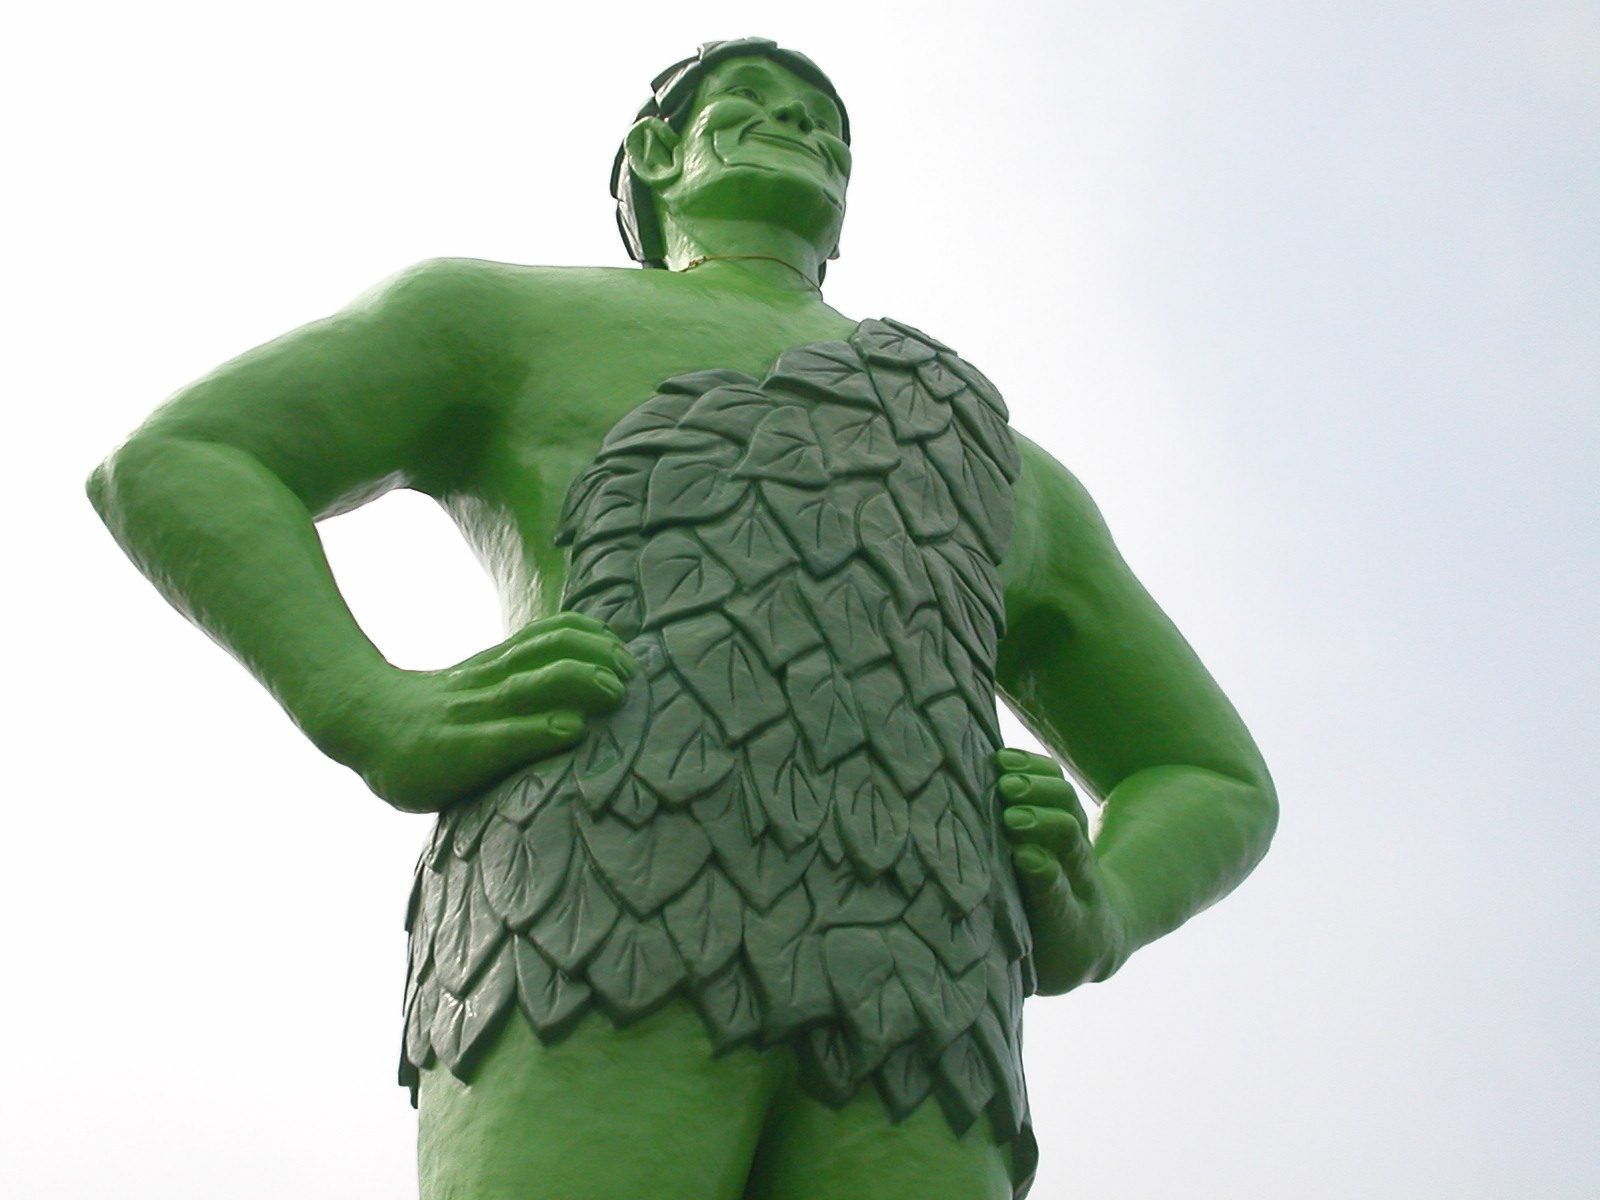 jolly-green-giant_070885.jpg